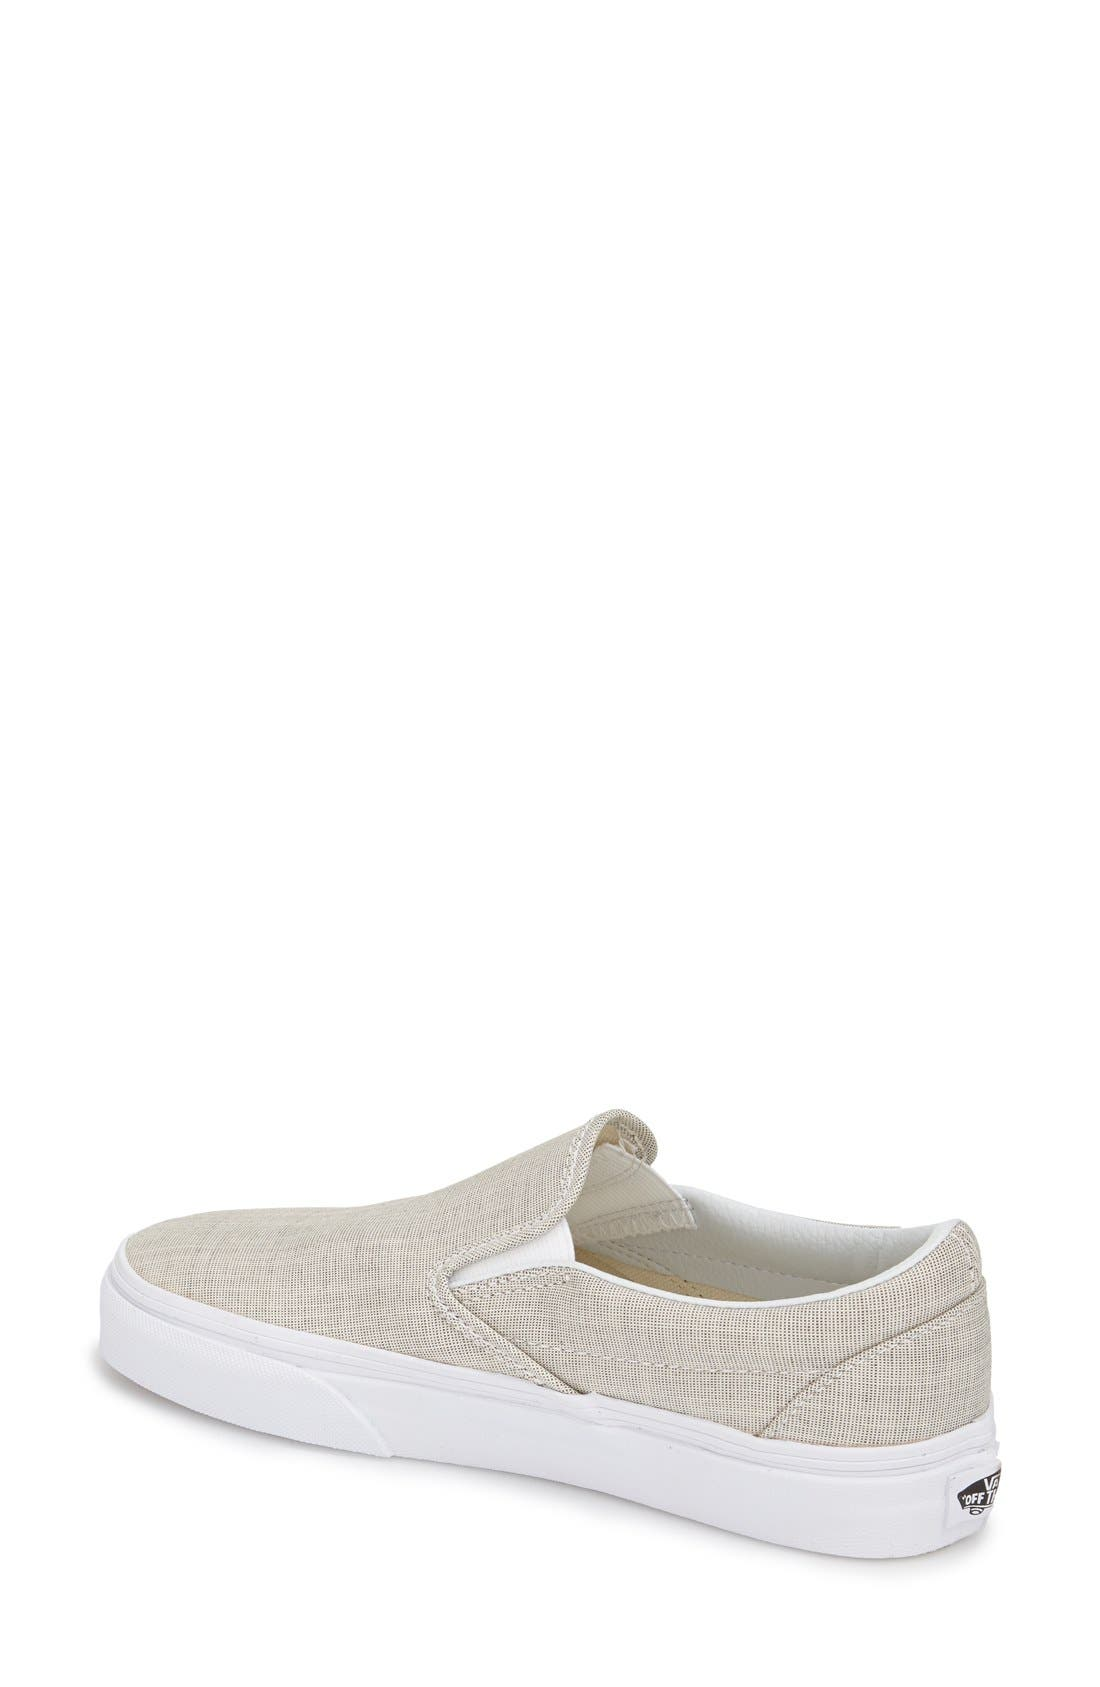 Classic Slip-On Sneaker,                             Alternate thumbnail 135, color,